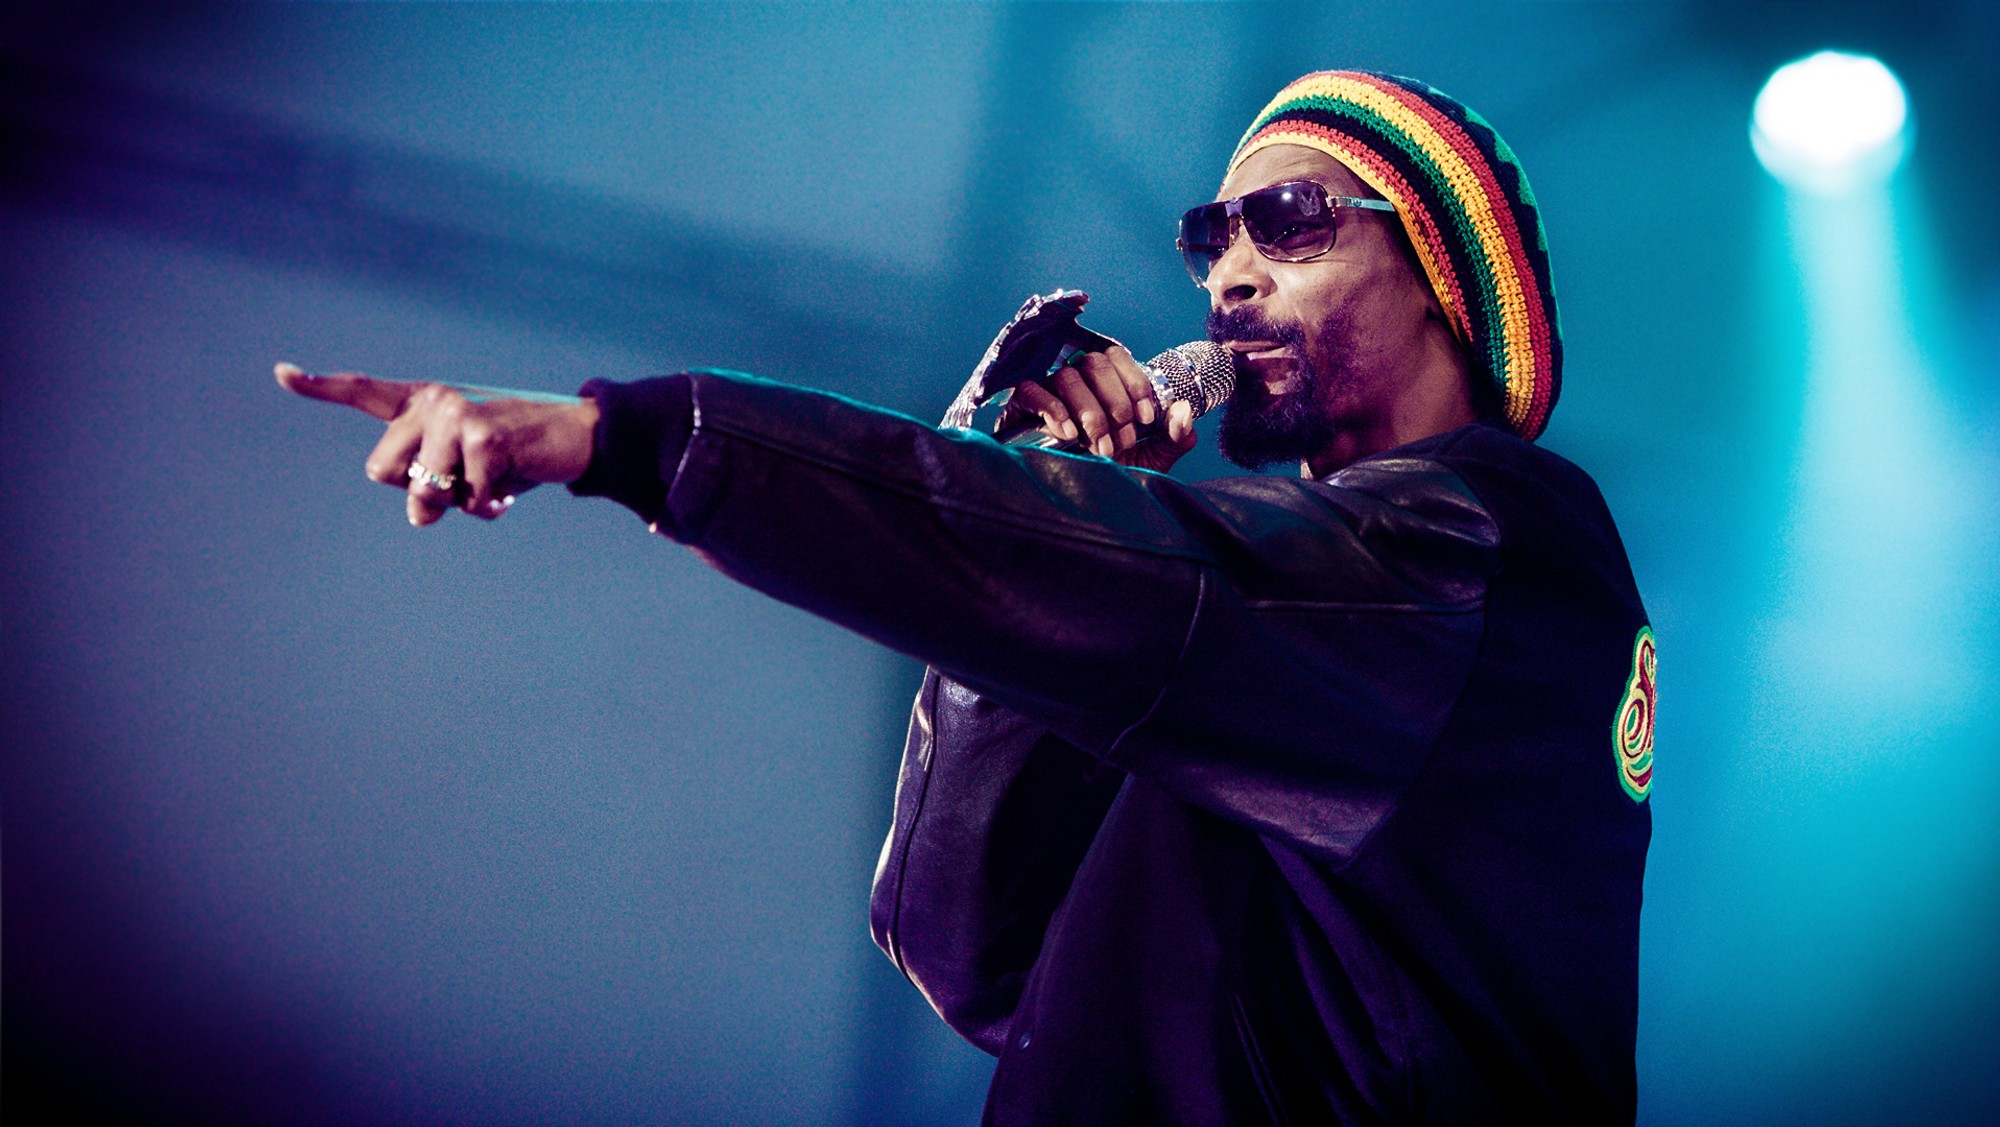 Aplicativo de foto do snoop dogg